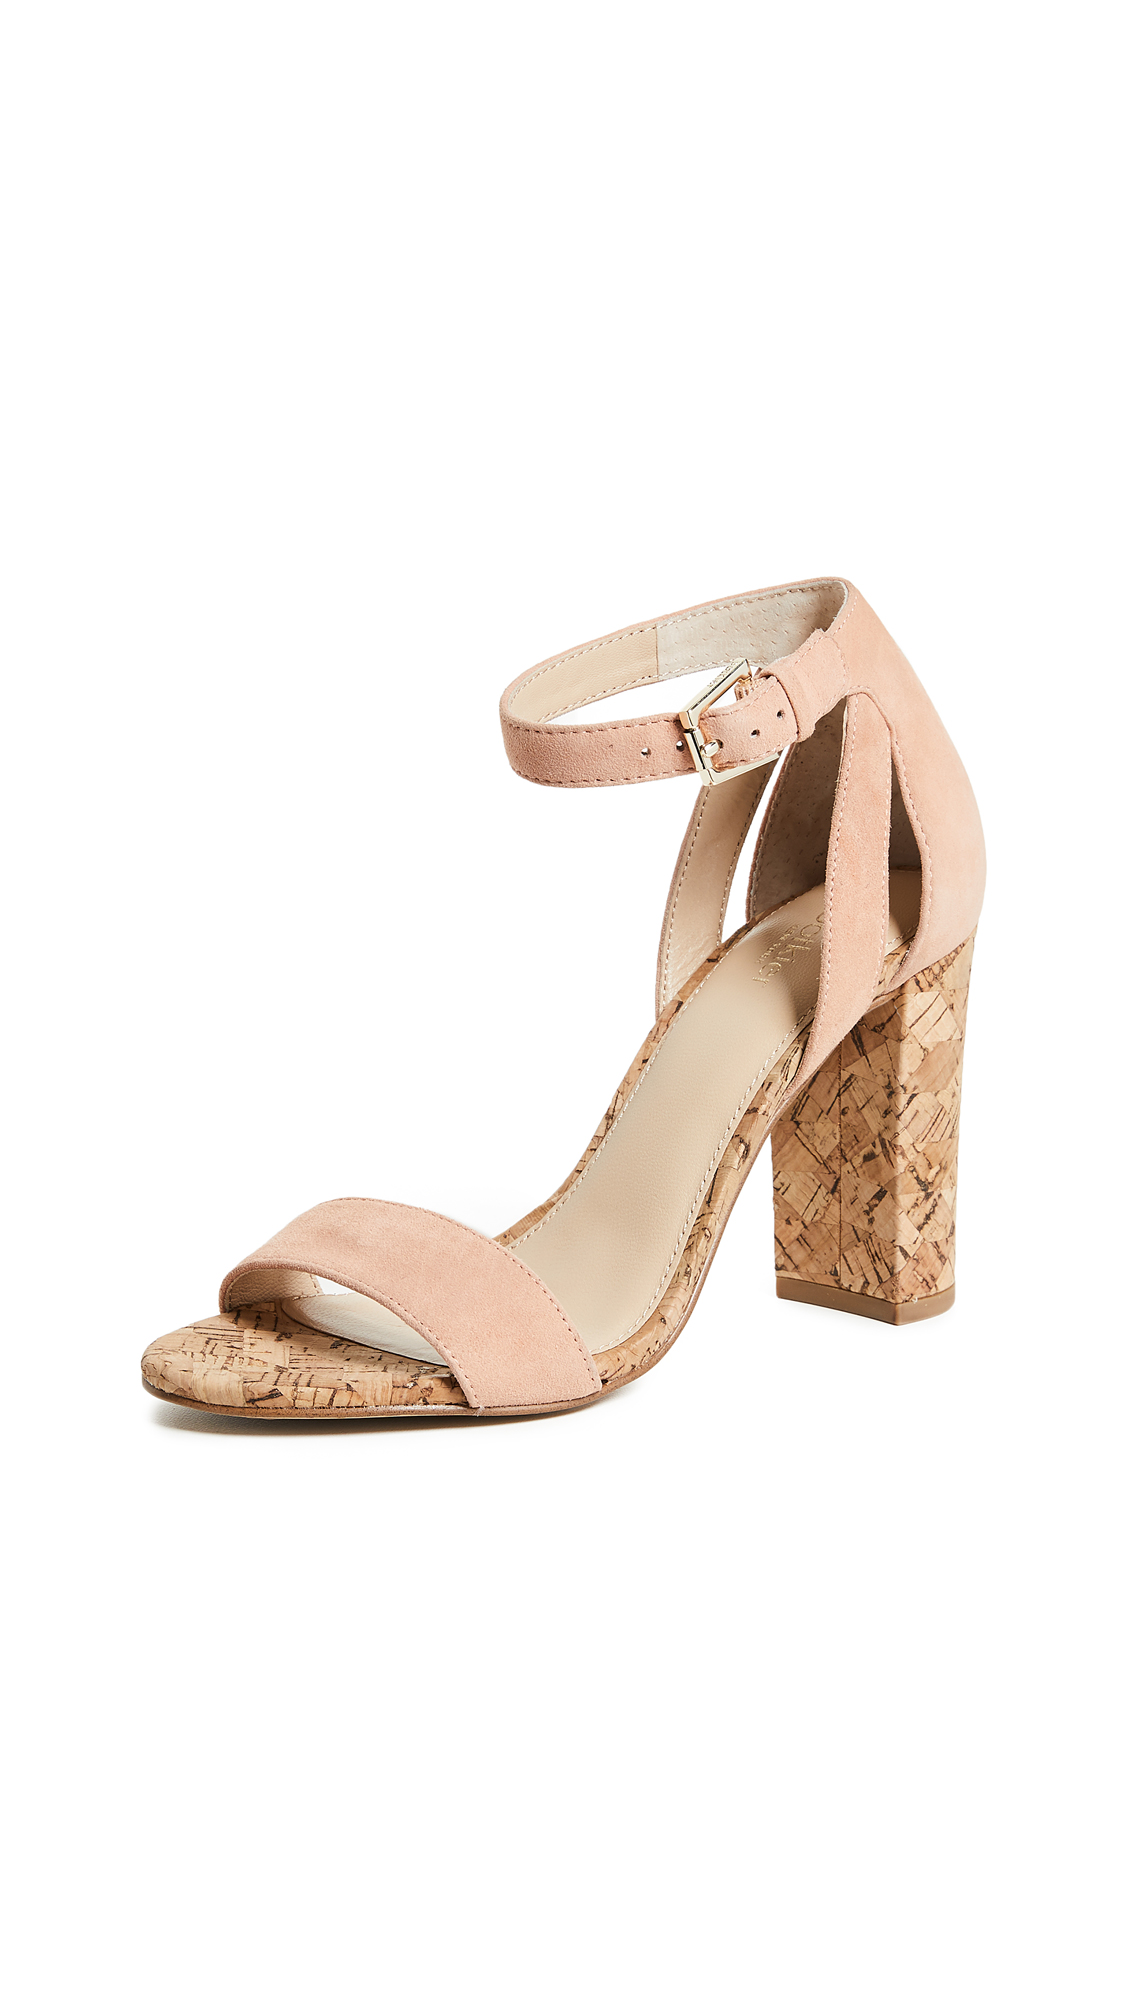 Botkier Gianna Block Heel Sandals - Soft Peach